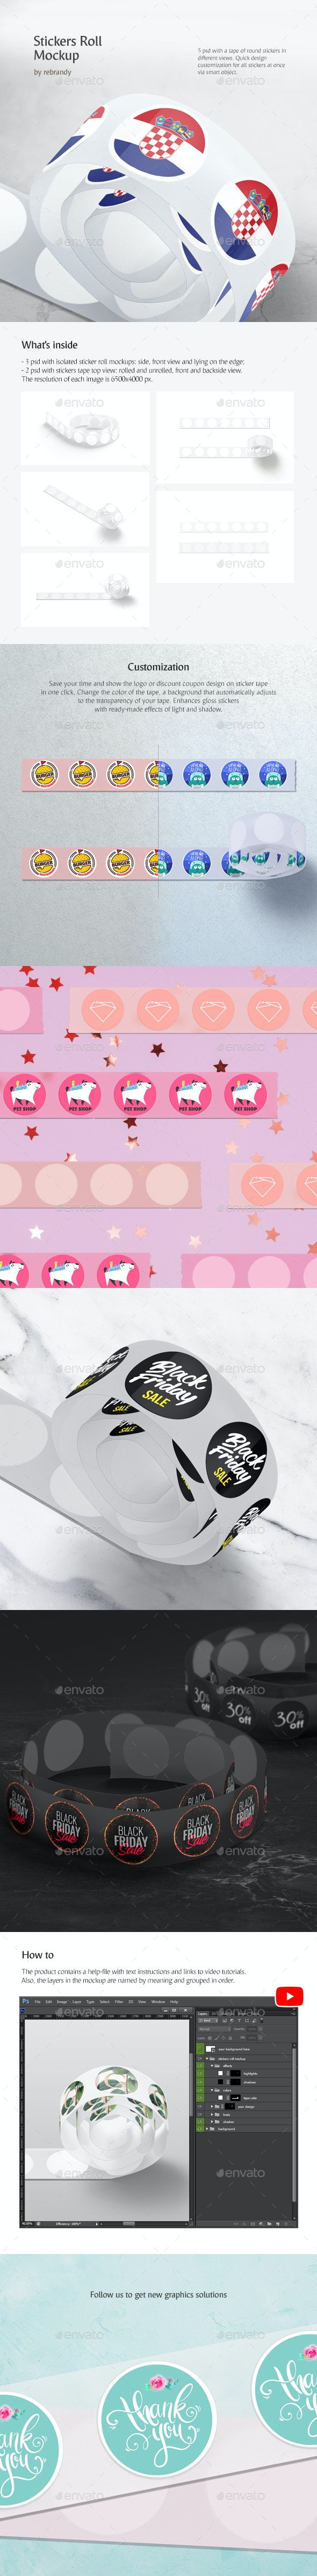 Stickers Roll Mockup - Product Mock-Ups Graphics